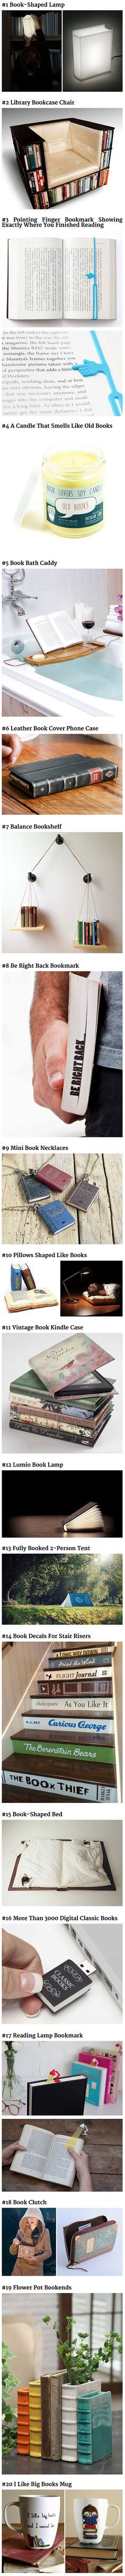 Here are some cool items that book fanatics would love. I want all of these so badly! Book Pillow!: